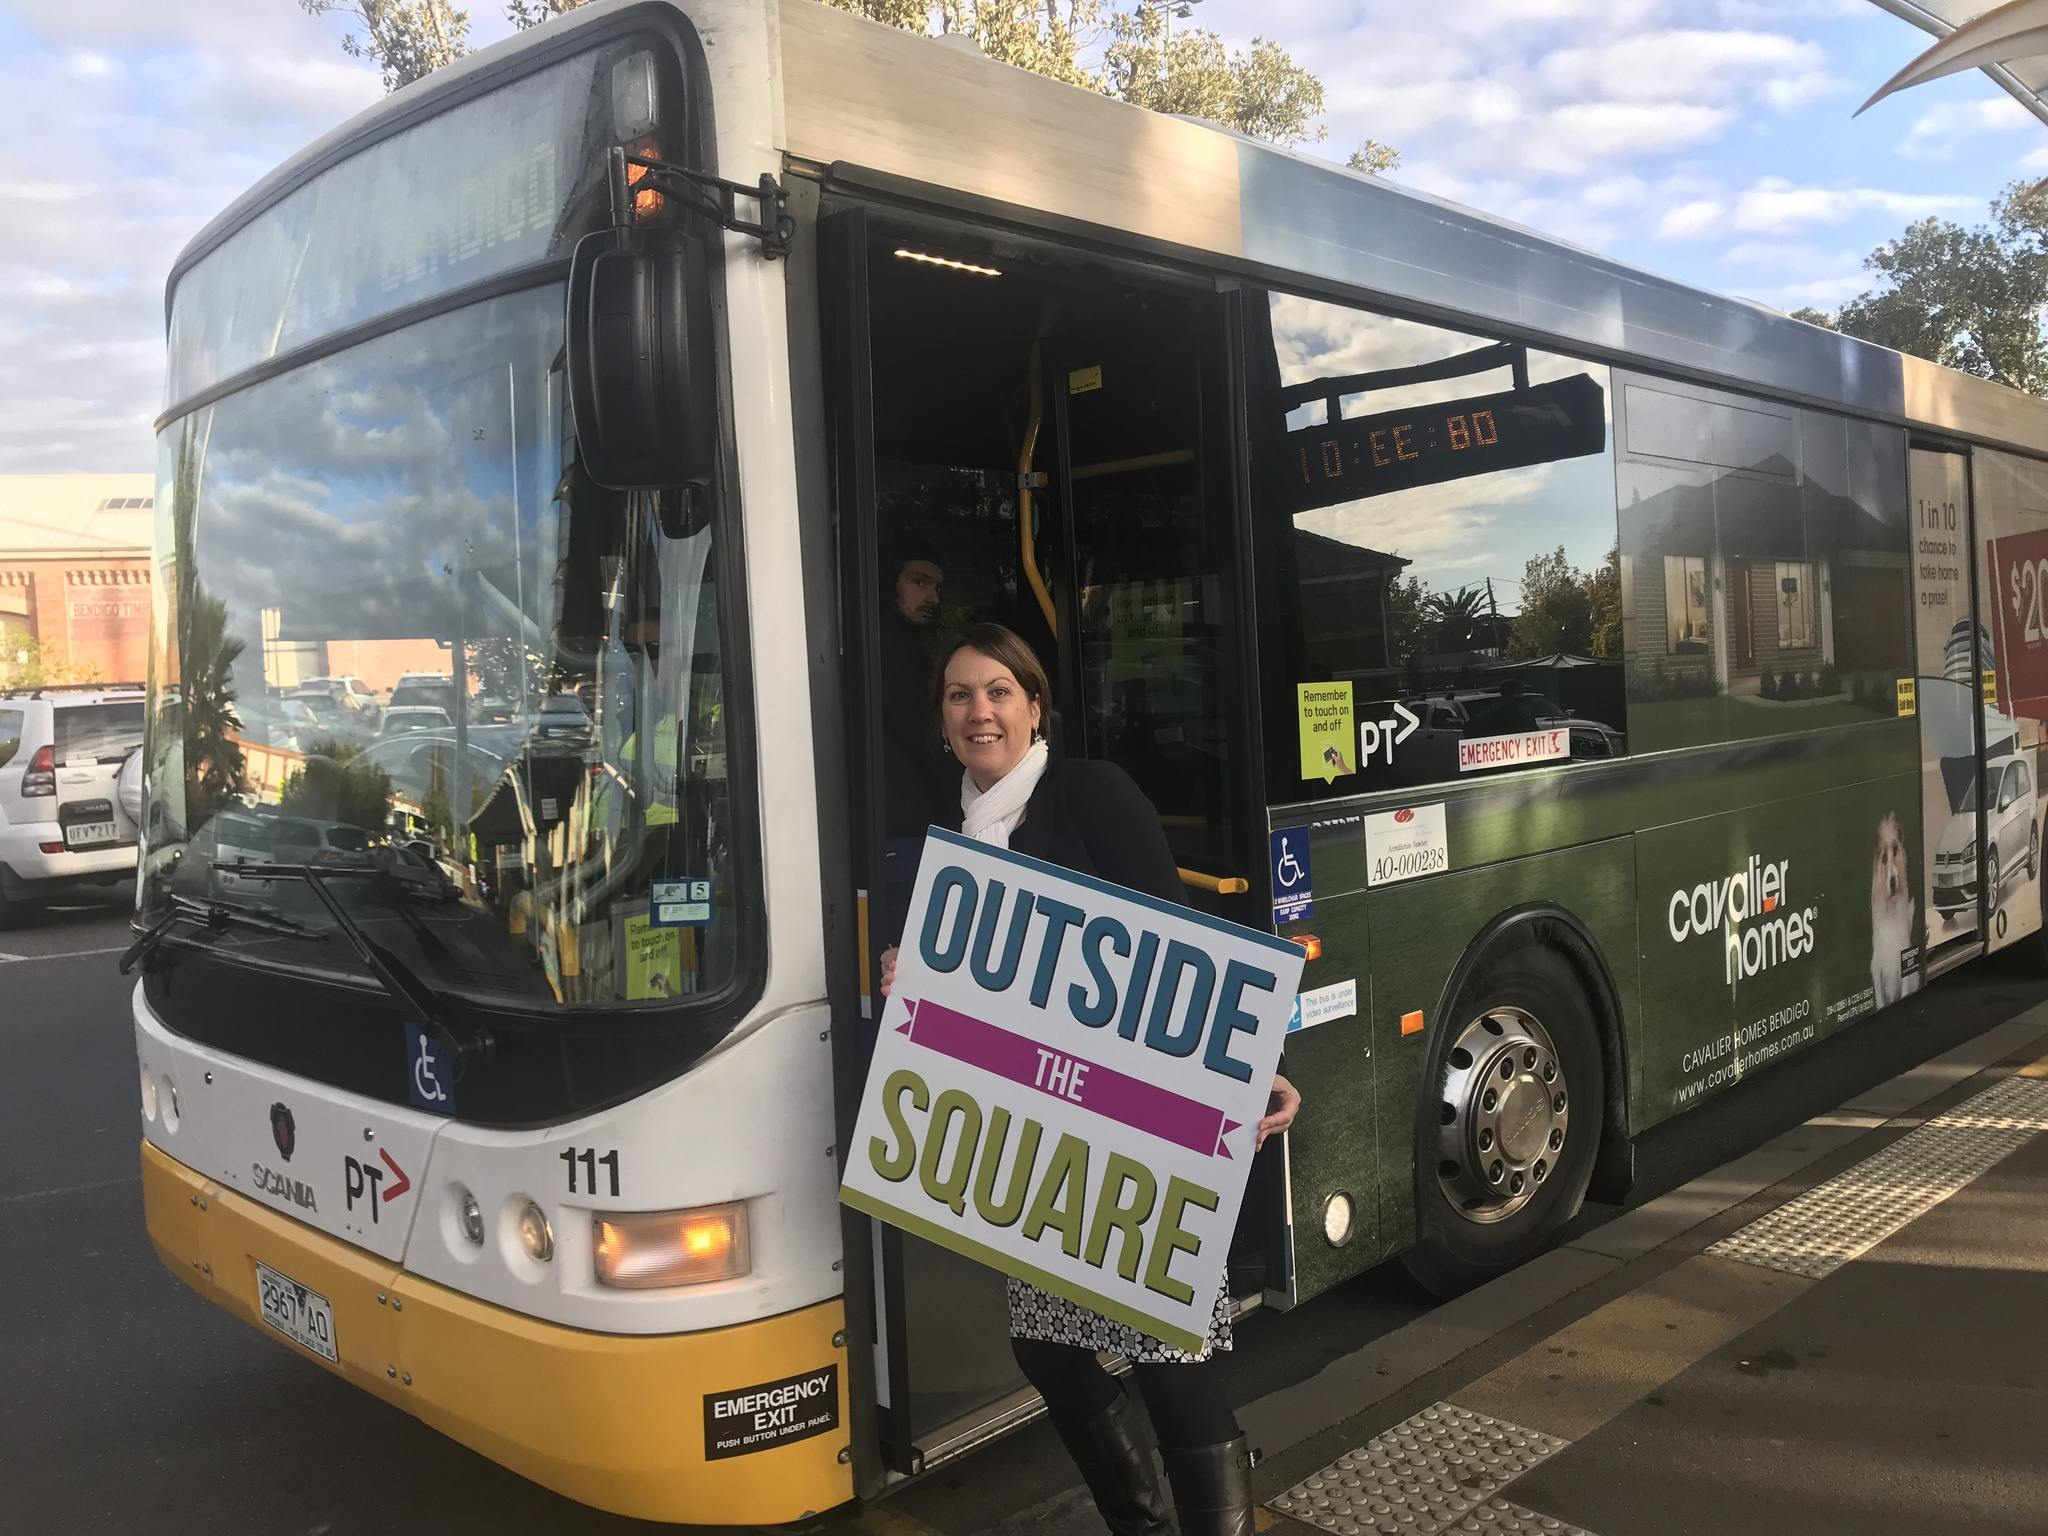 Curious About Climate? Get on the bus!